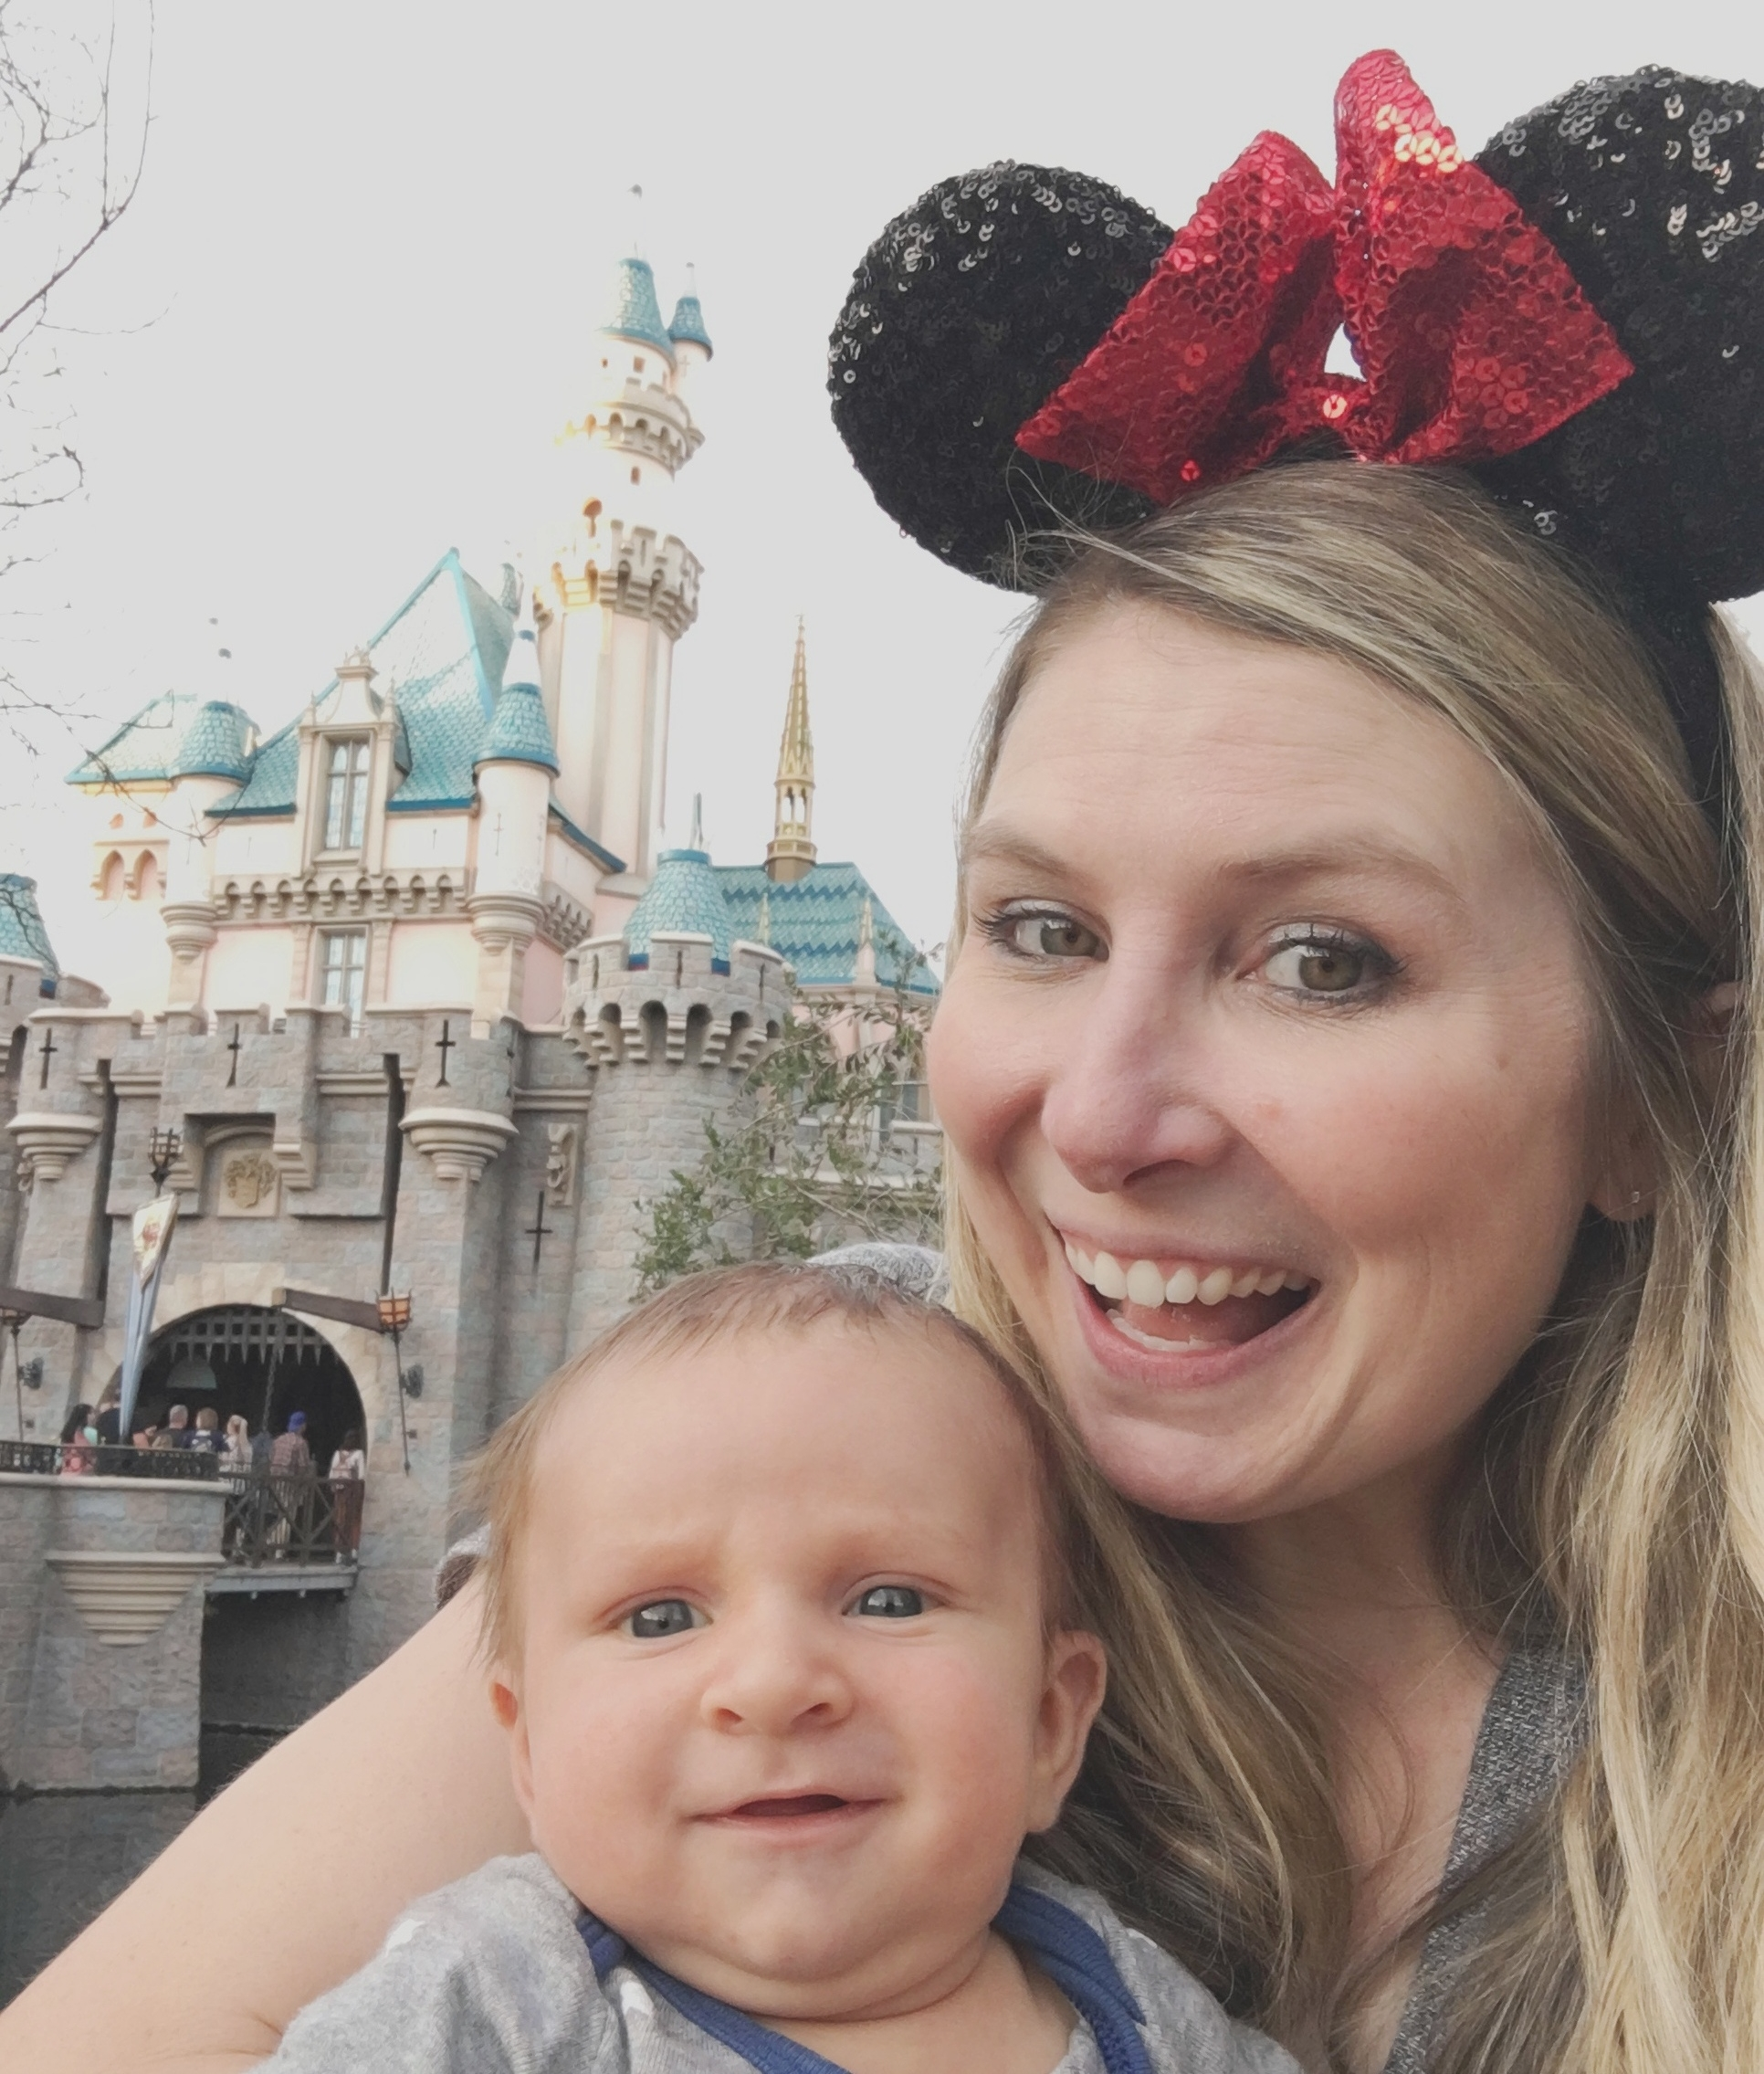 Me & Luke at Disneyland when he was only 7 weeks old!